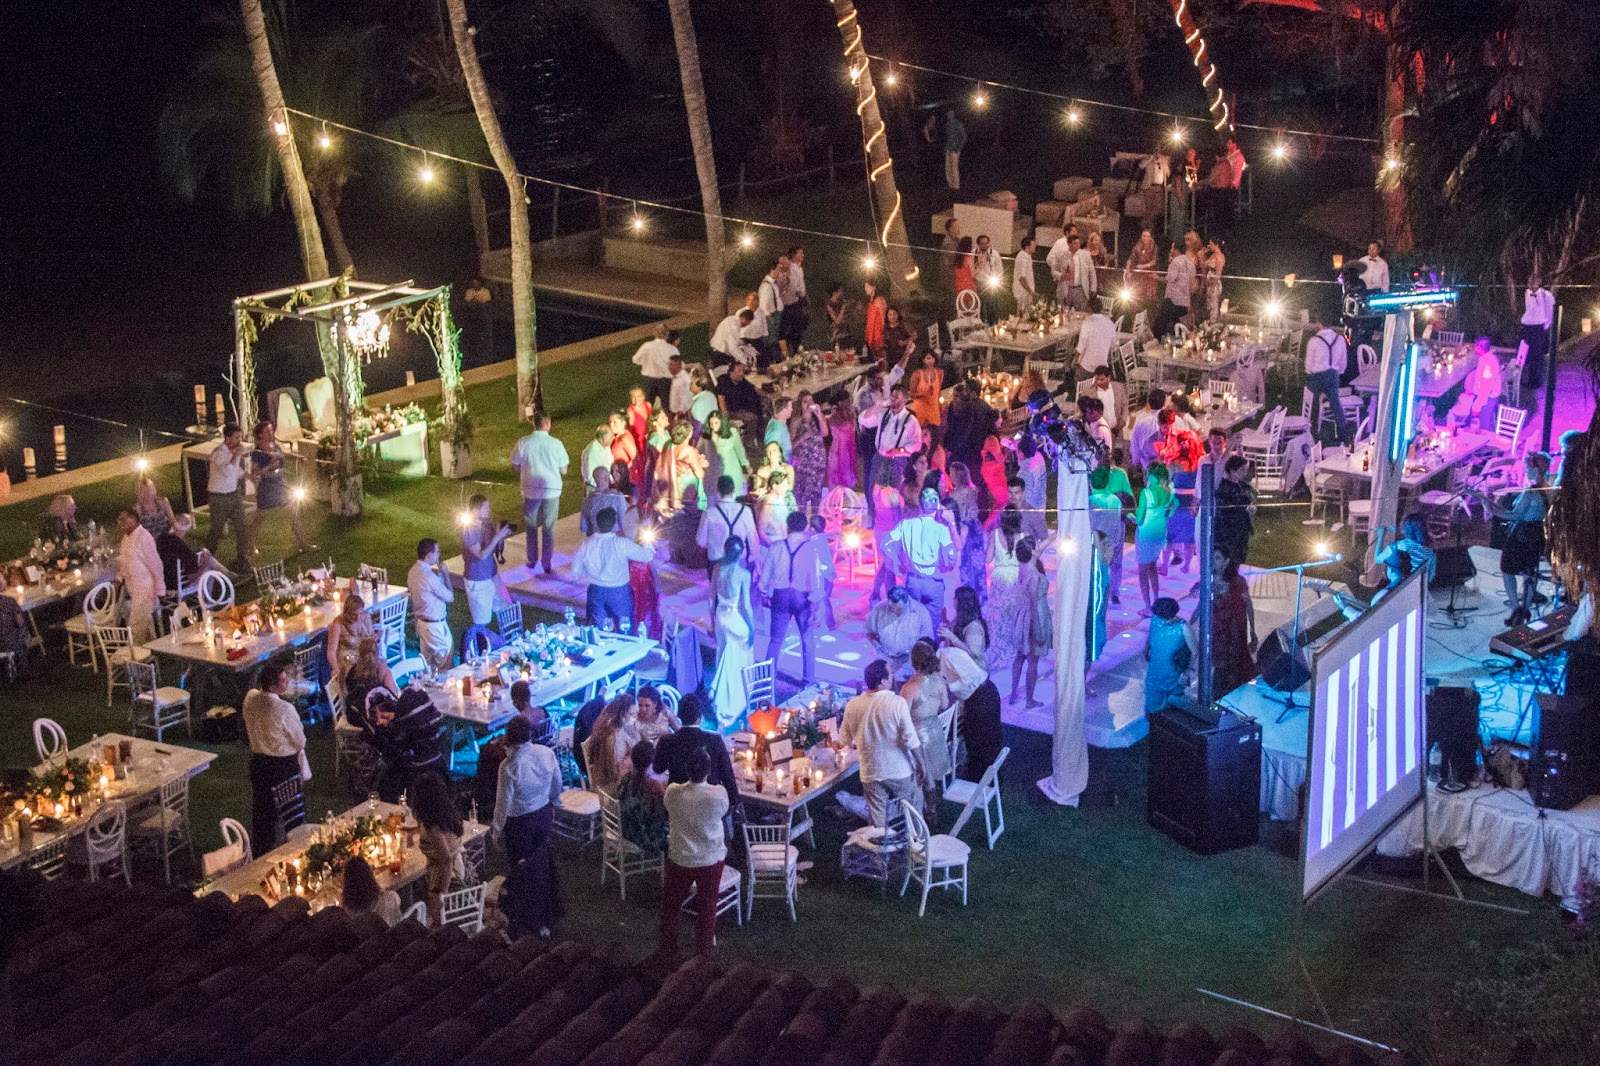 In Puerto Vallarta There Are Many Hotels Yet They Offer No Privacy For Your Weding Ceremon And Reception Brides Seek A Private Wedding Venue Like Martoca